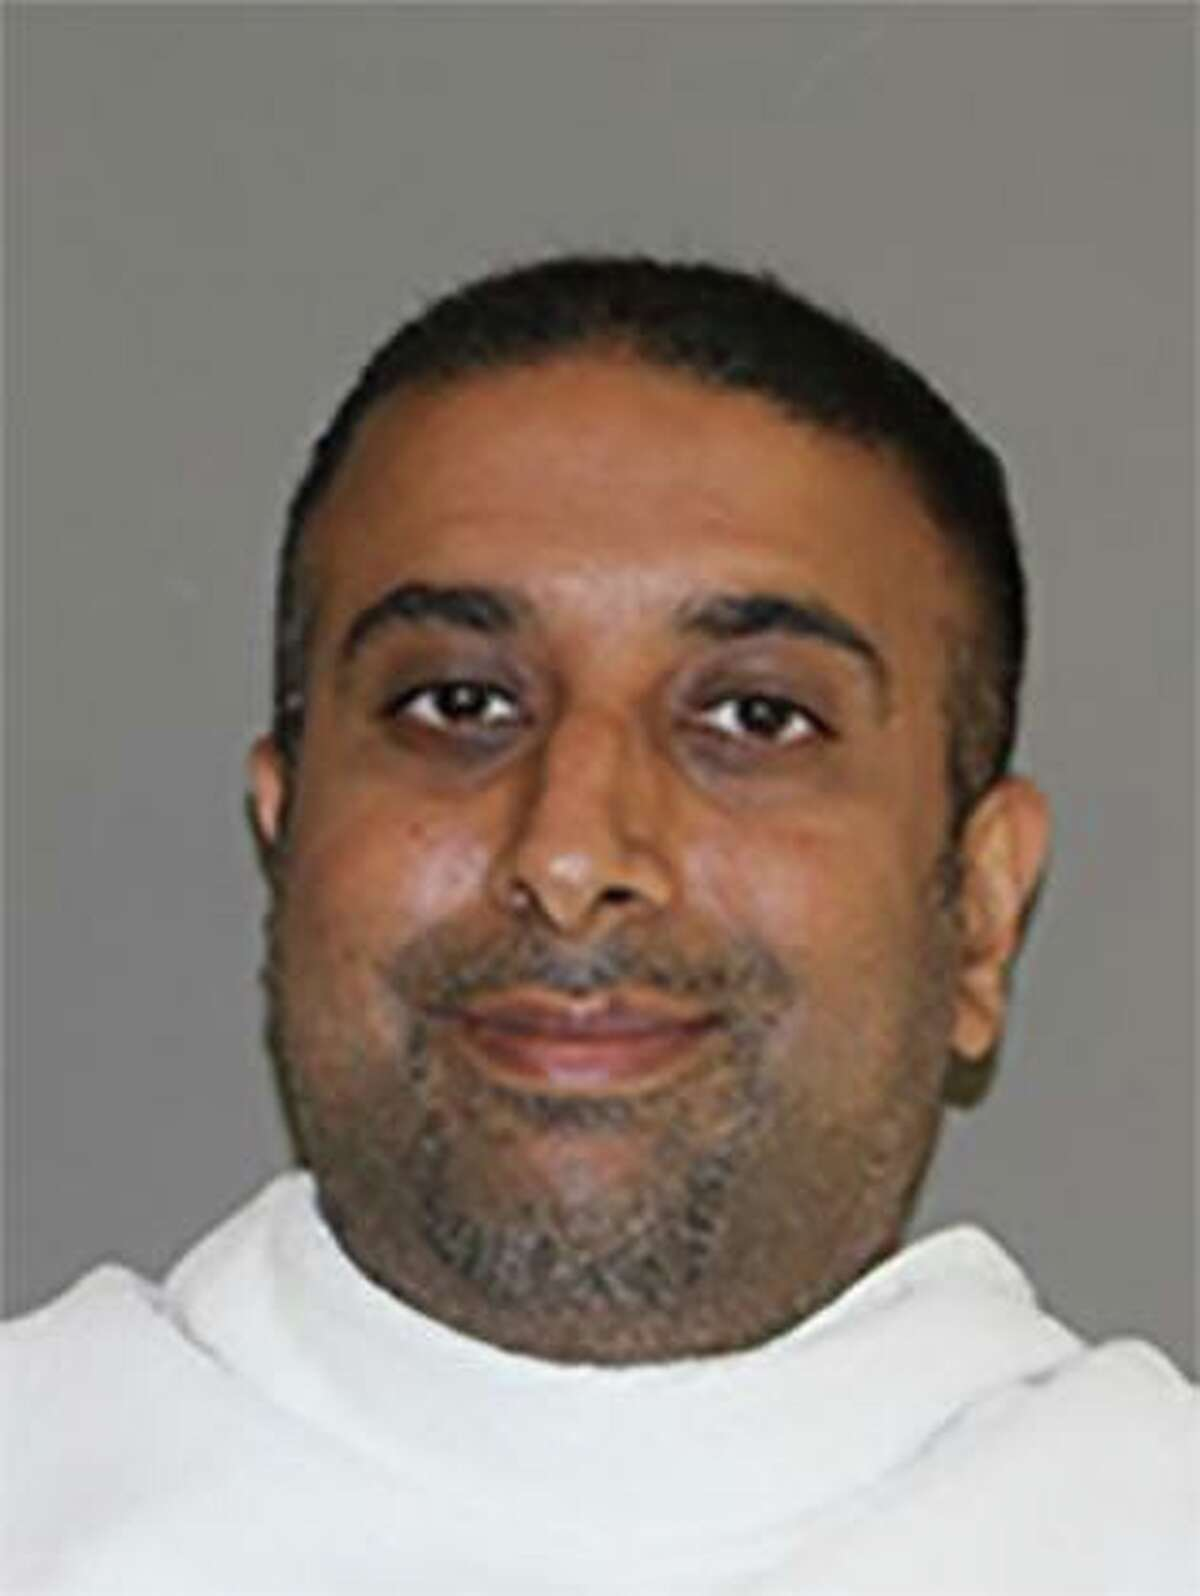 Zul Mirza Mohamed, a Carrollton mayoral candidate, was arrested on Oct. 7 and charged with more than 100 felonies related to voter fraud.